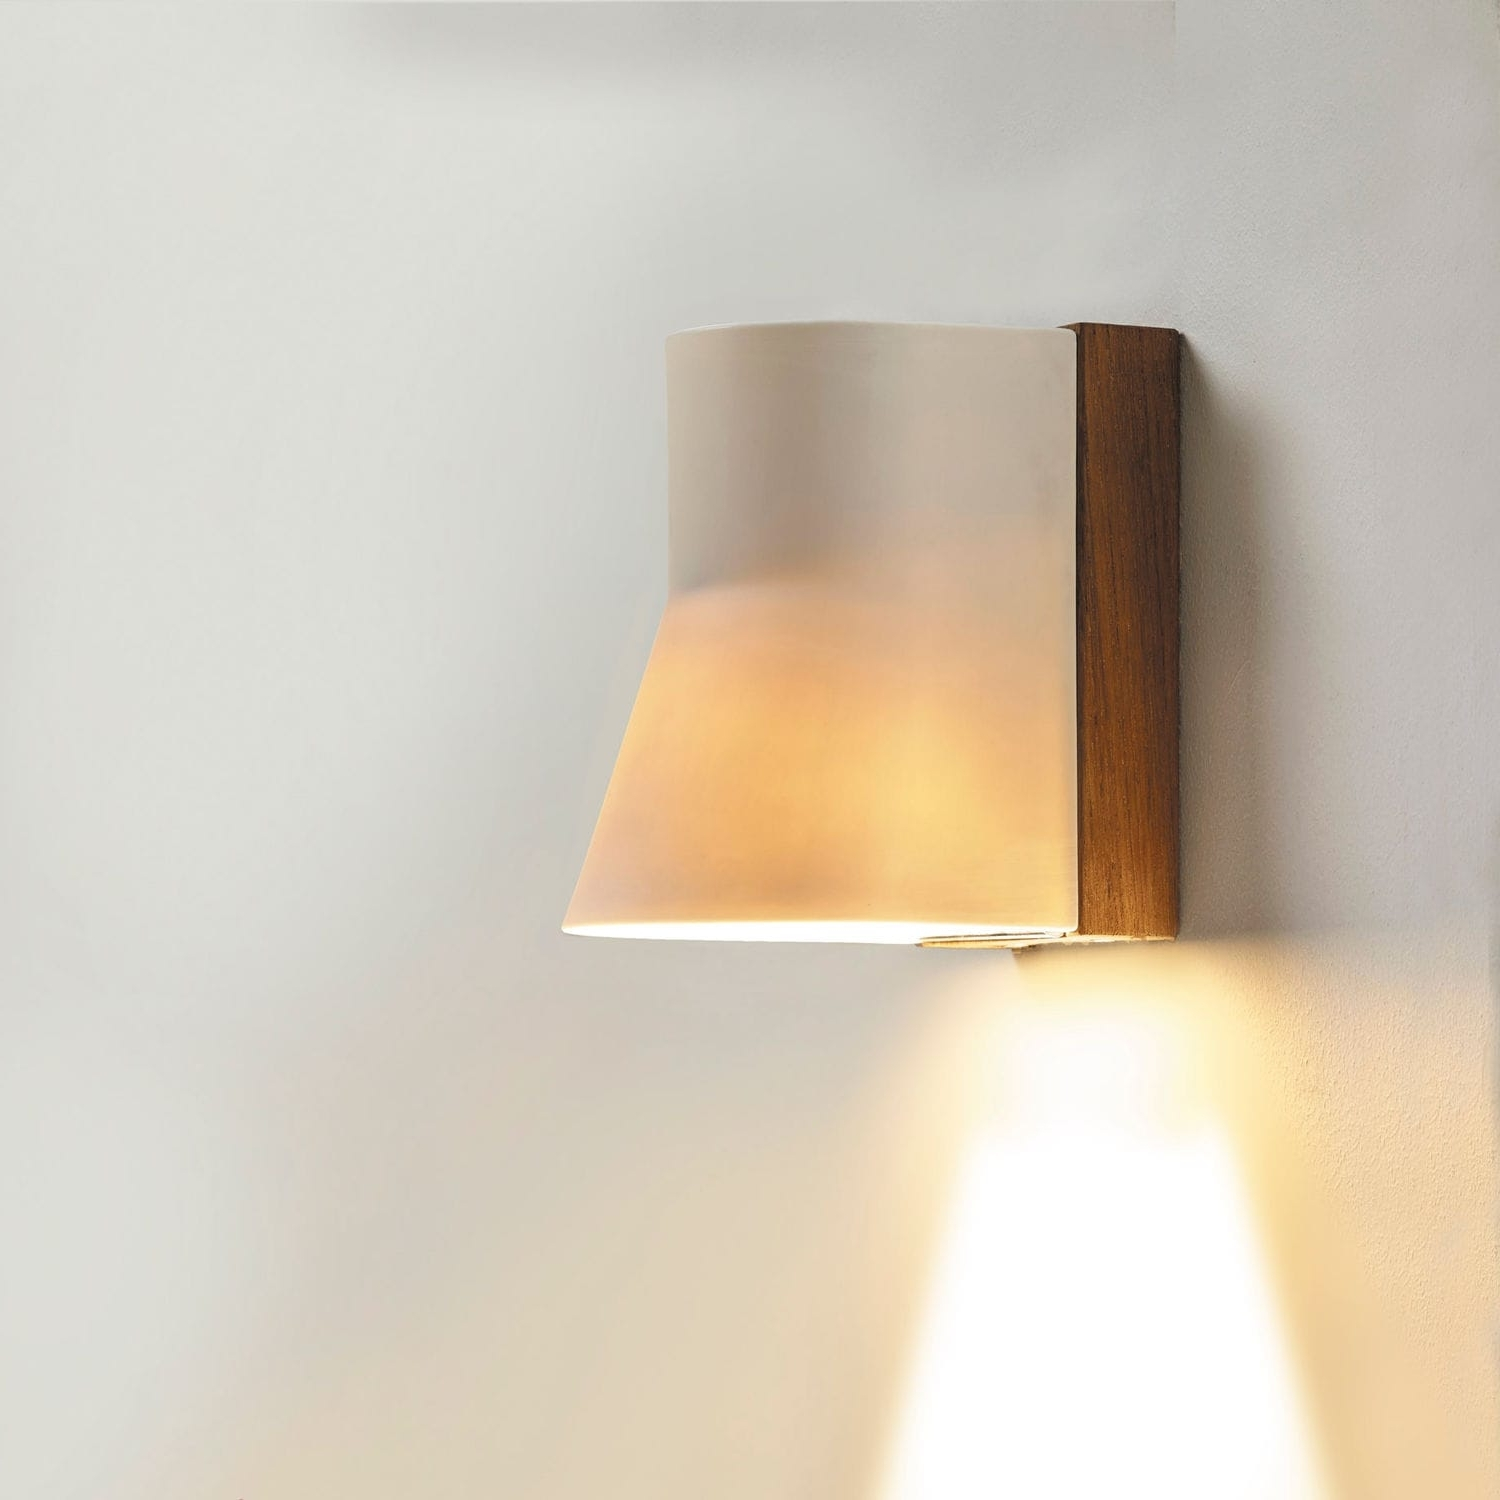 Contemporary Wall Light / Outdoor / Teak / Porcelain – Beacon Wall Inside Trendy Beacon Outdoor Wall Lighting (View 18 of 20)